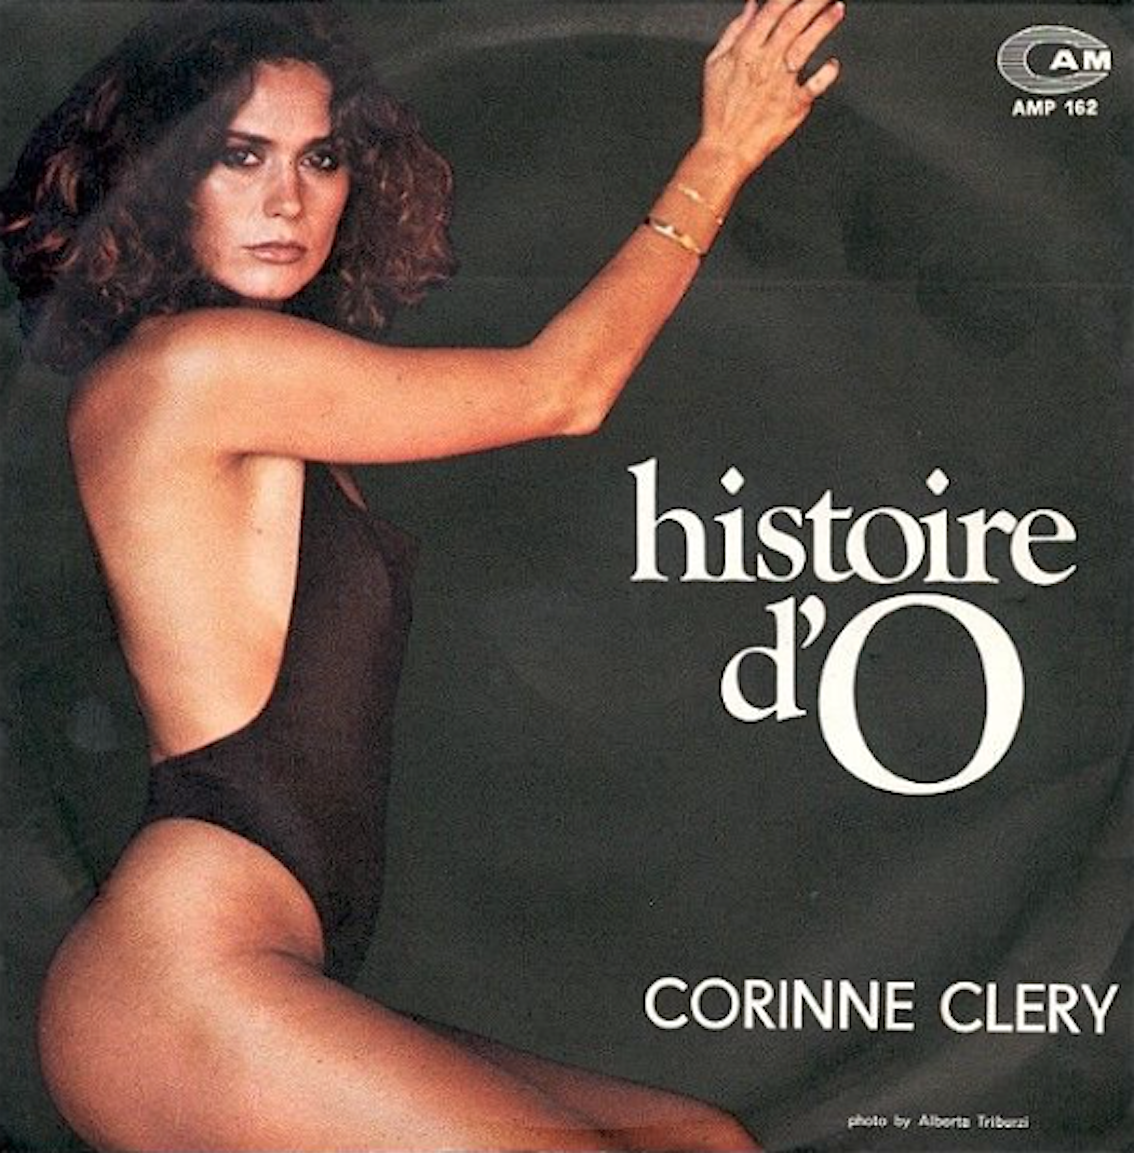 Corinne_clery_histoire_d_o